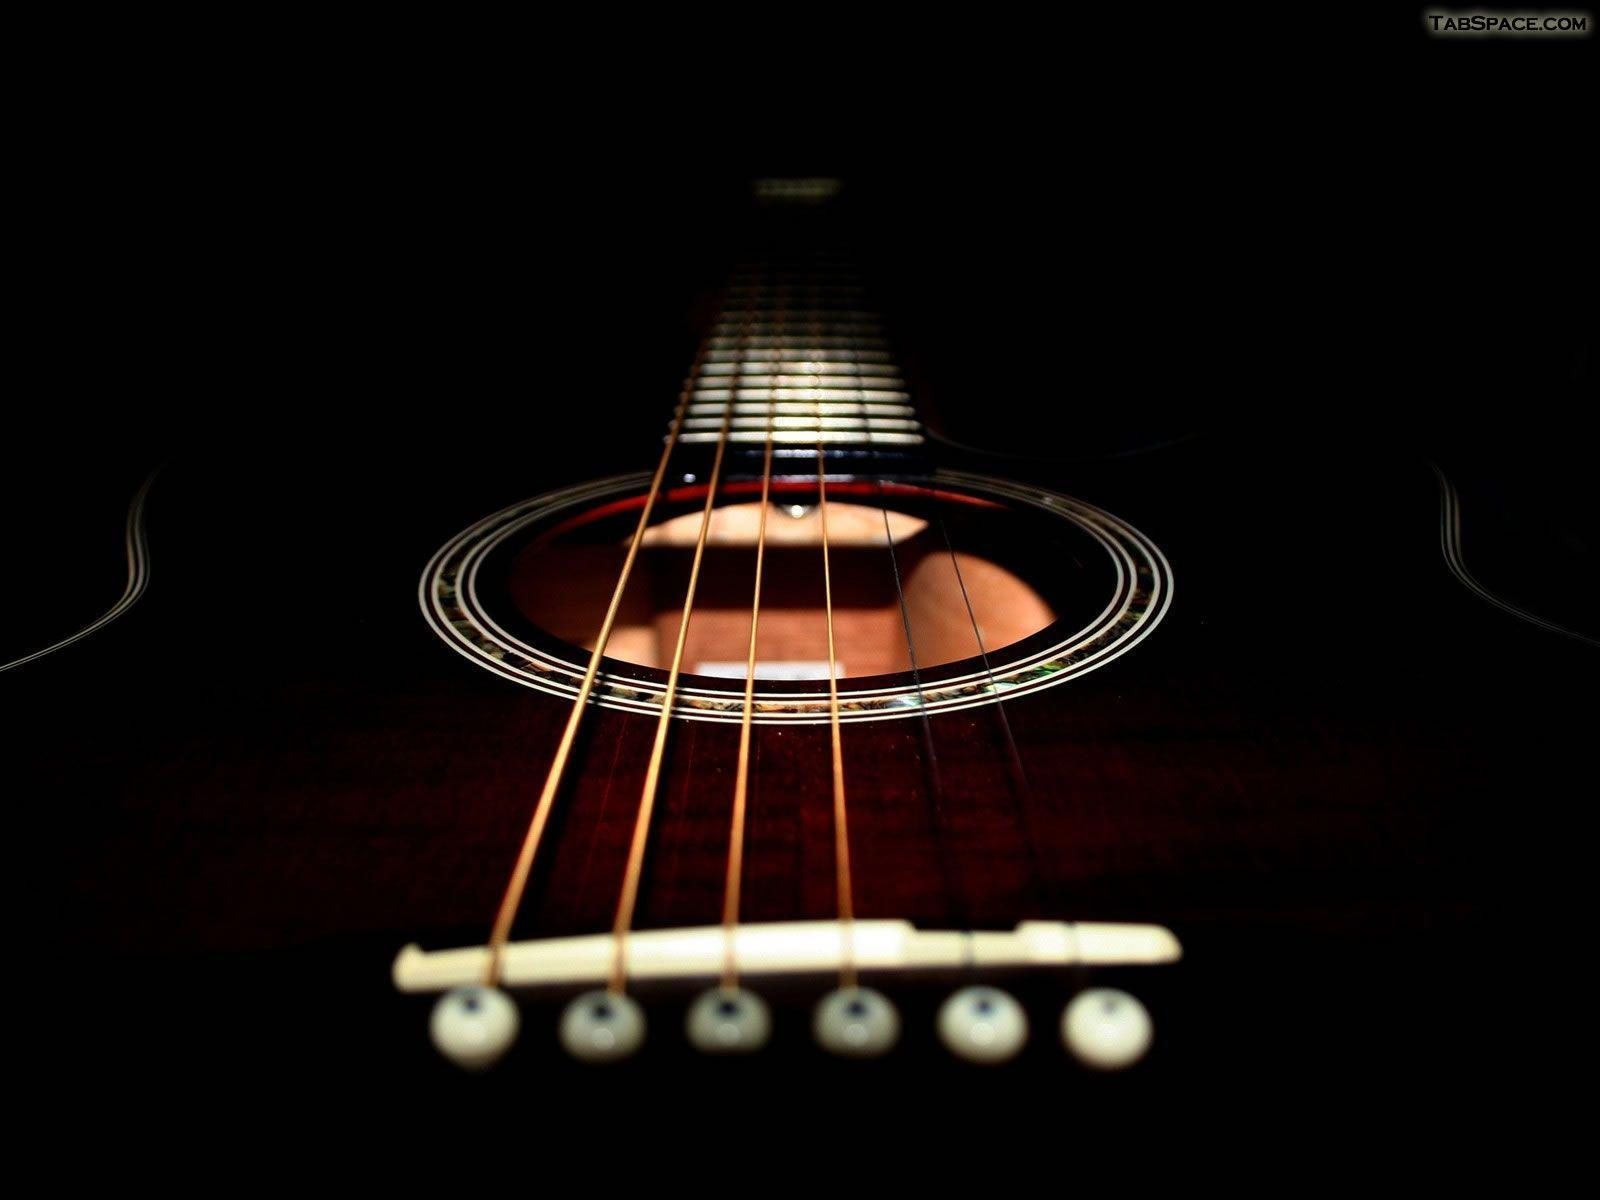 cool guitar wallpaper for - photo #12